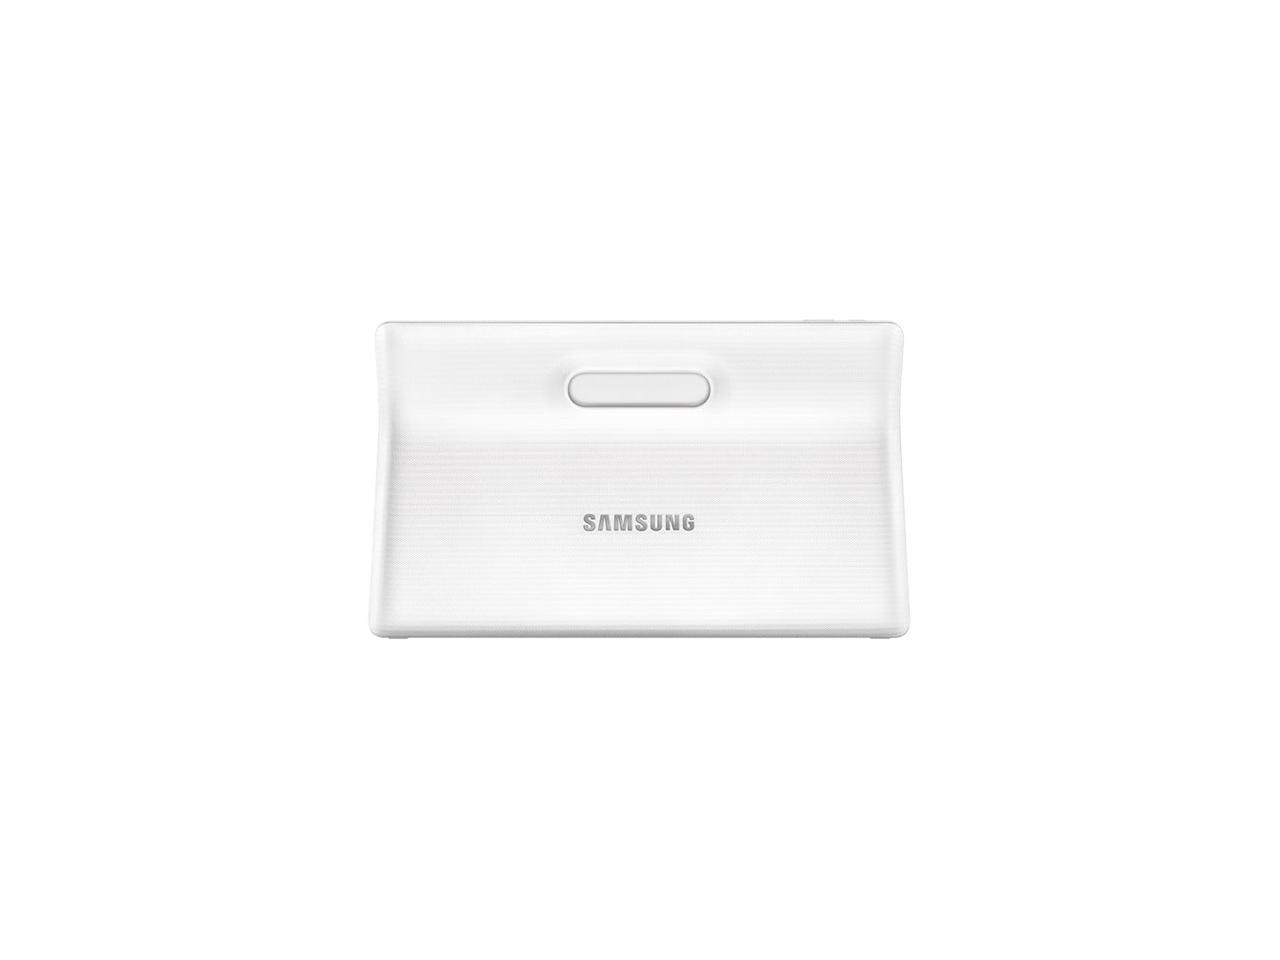 SAMSUNG Galaxy View 32 GB Flash Storage 18.4